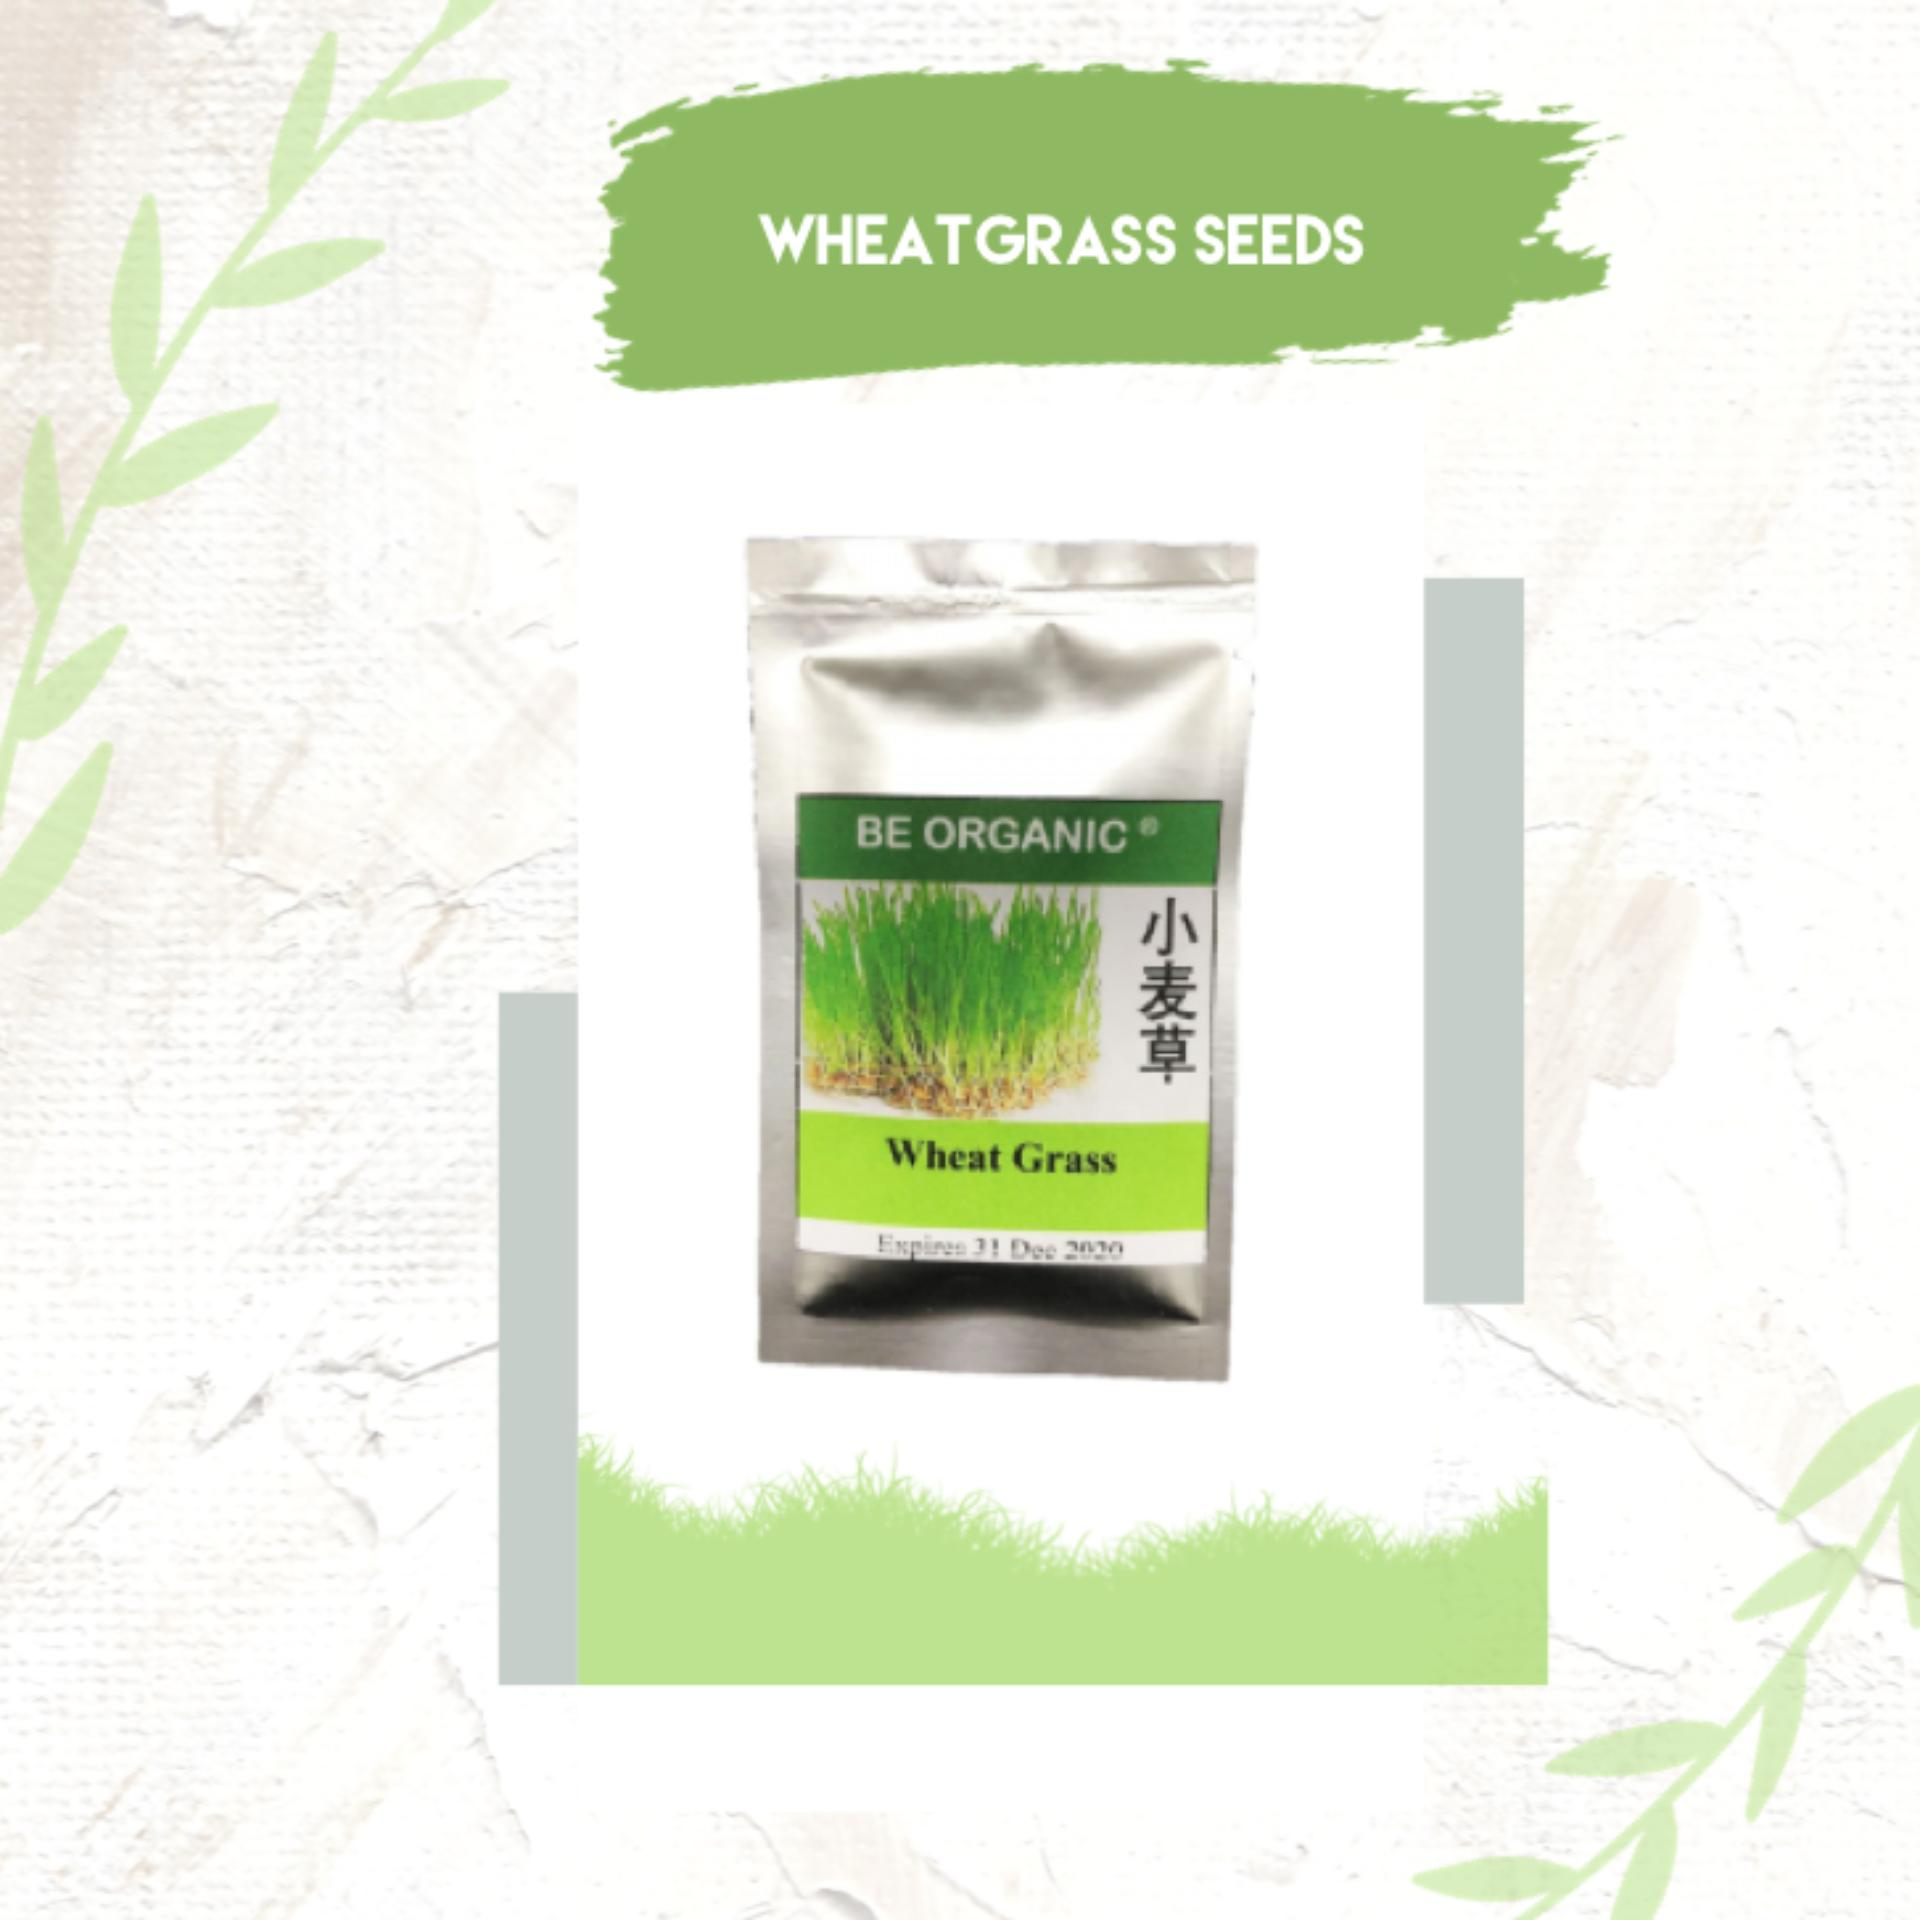 Wheat Grass Microgreen Wheatgrass Seeds